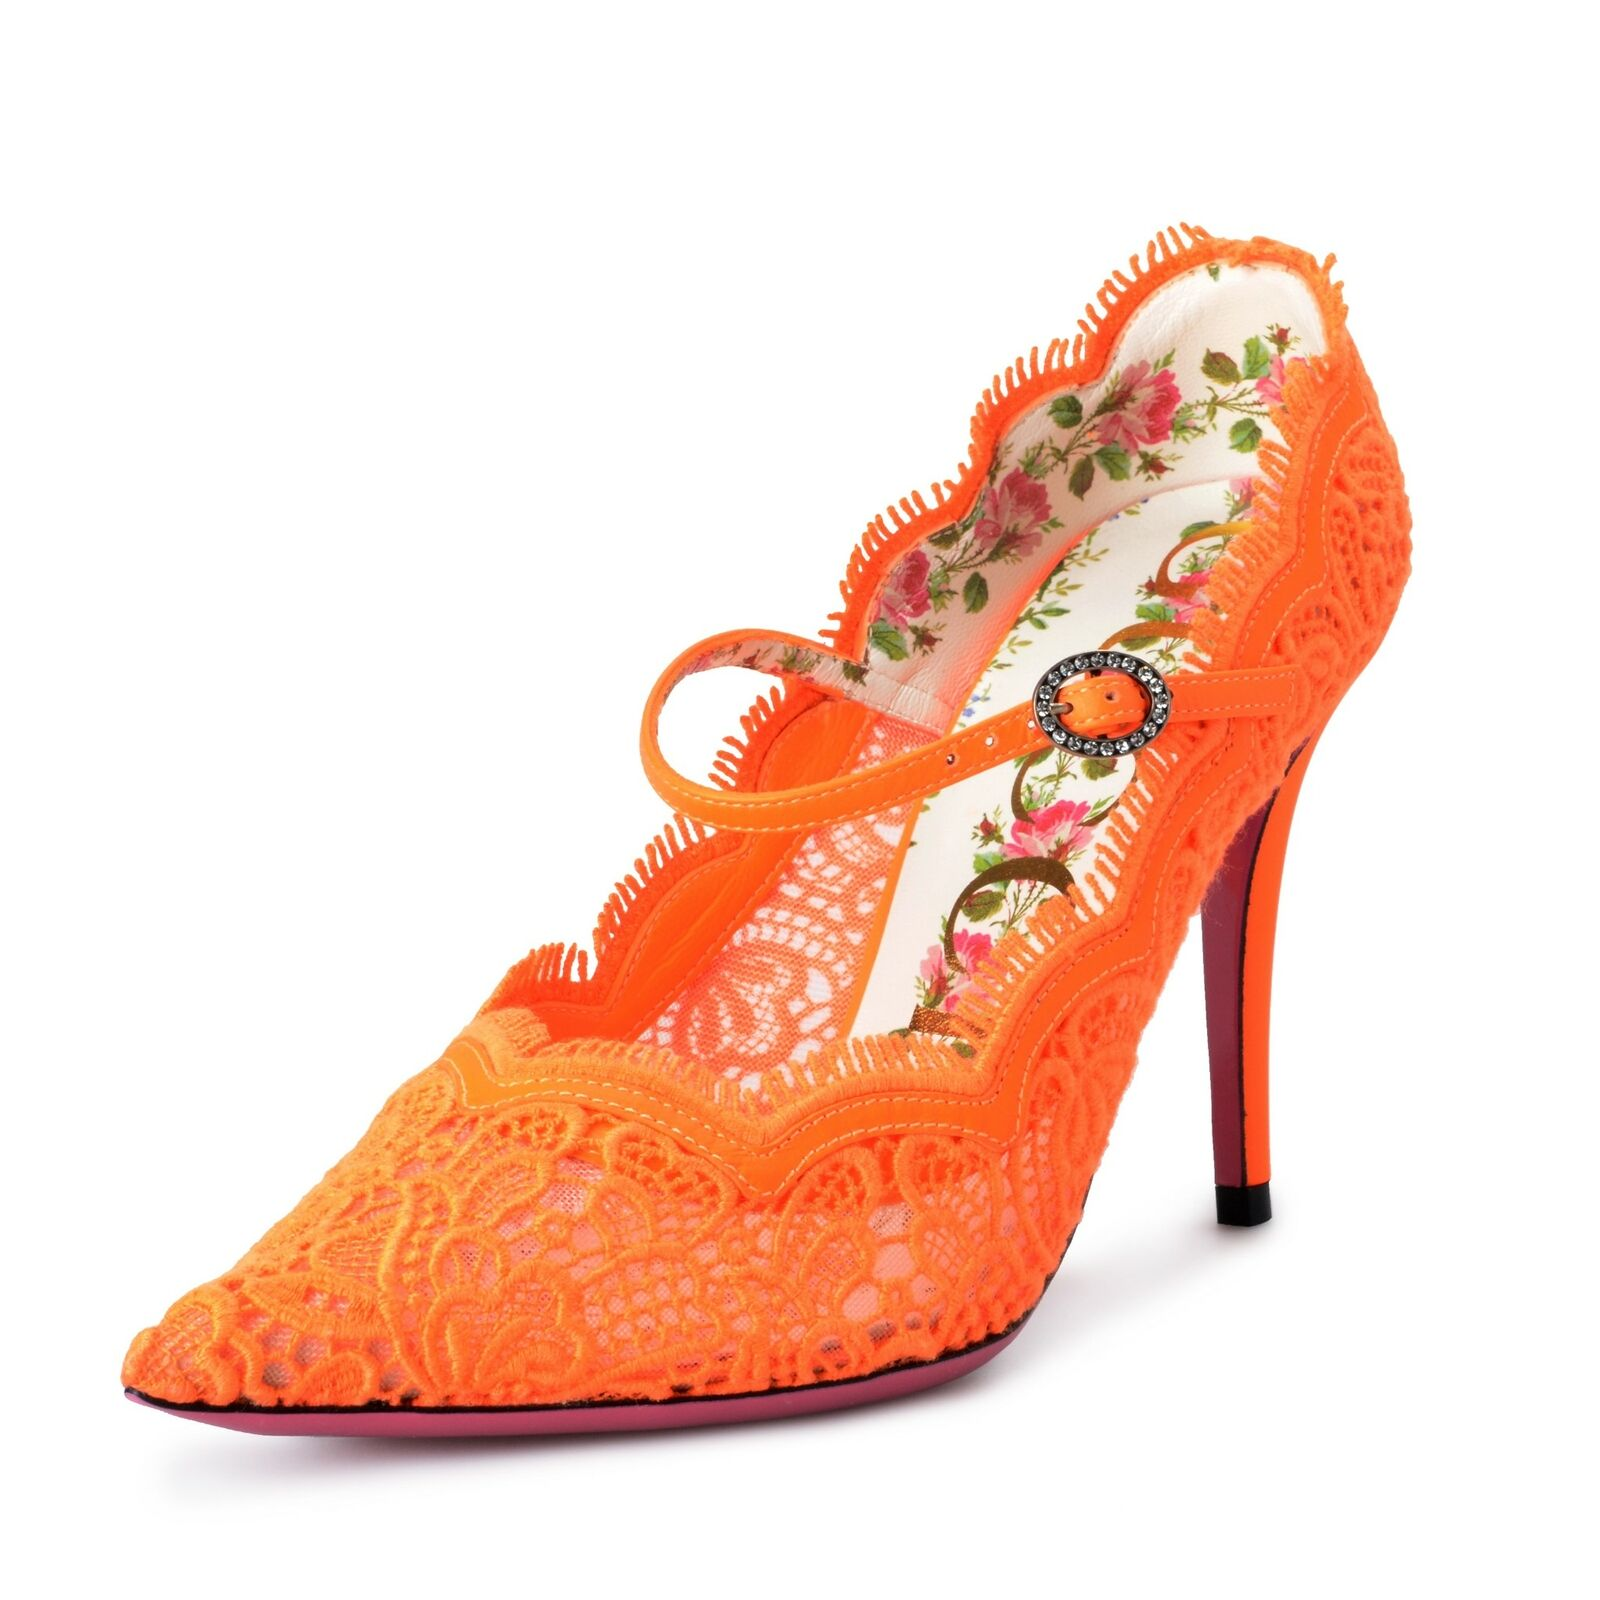 "Gucci ""Virginia"" Women's Orange Corded Lace Mary Jane High Heels Pumps Shoes"